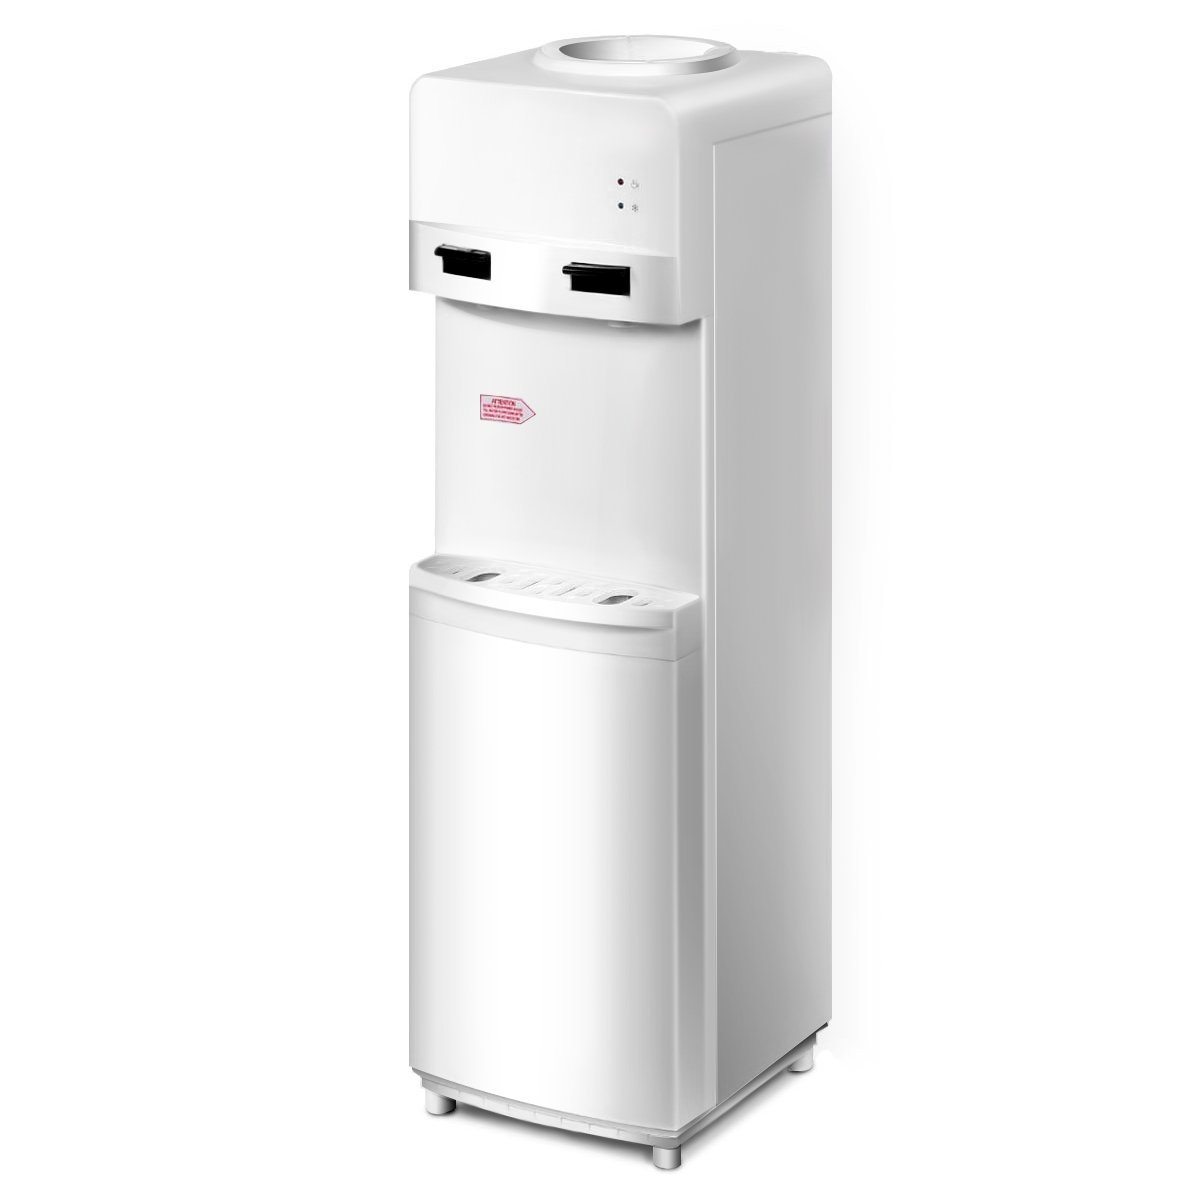 Giantex Top Loading Water Cooler Dispenser 5 Gallon Normal Temperature Water And Hot Bottle Load Electric Primo Home (White)